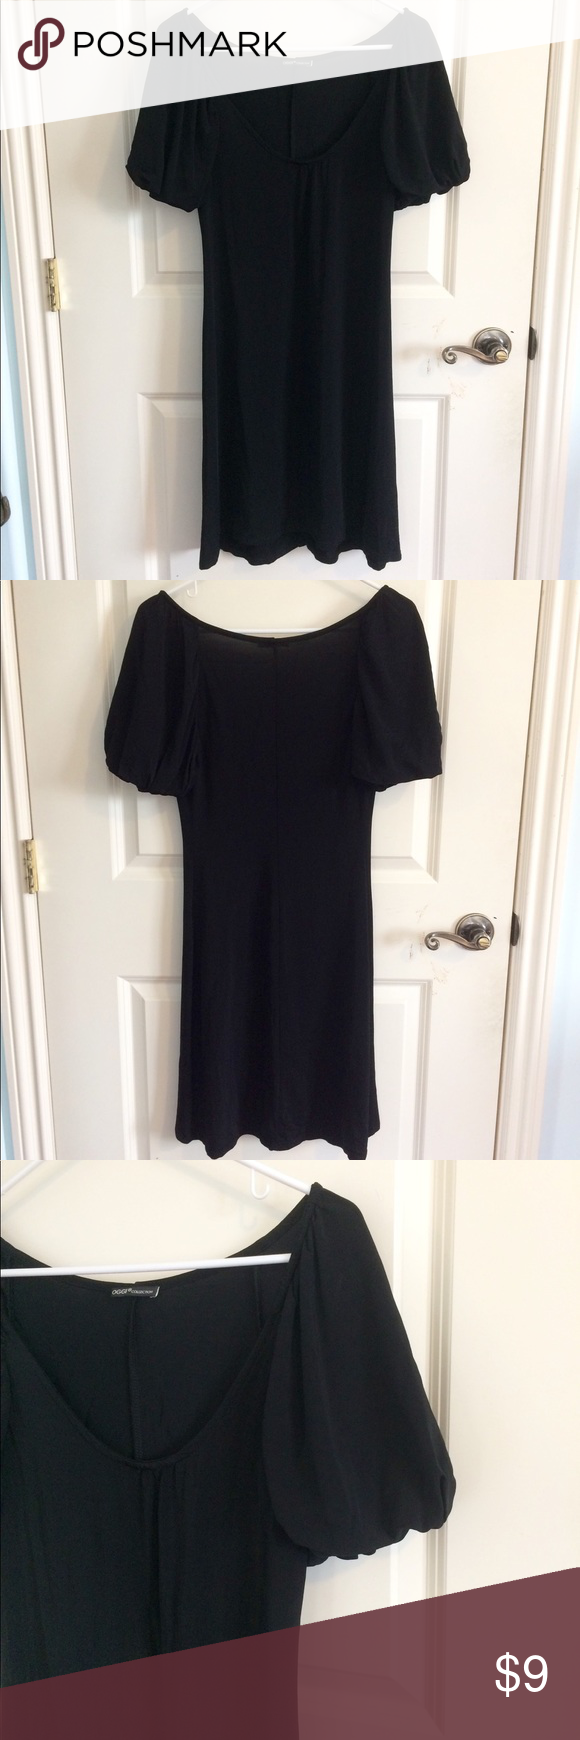 Puffy Short Sleeves Little Black Dress in My Posh Closet